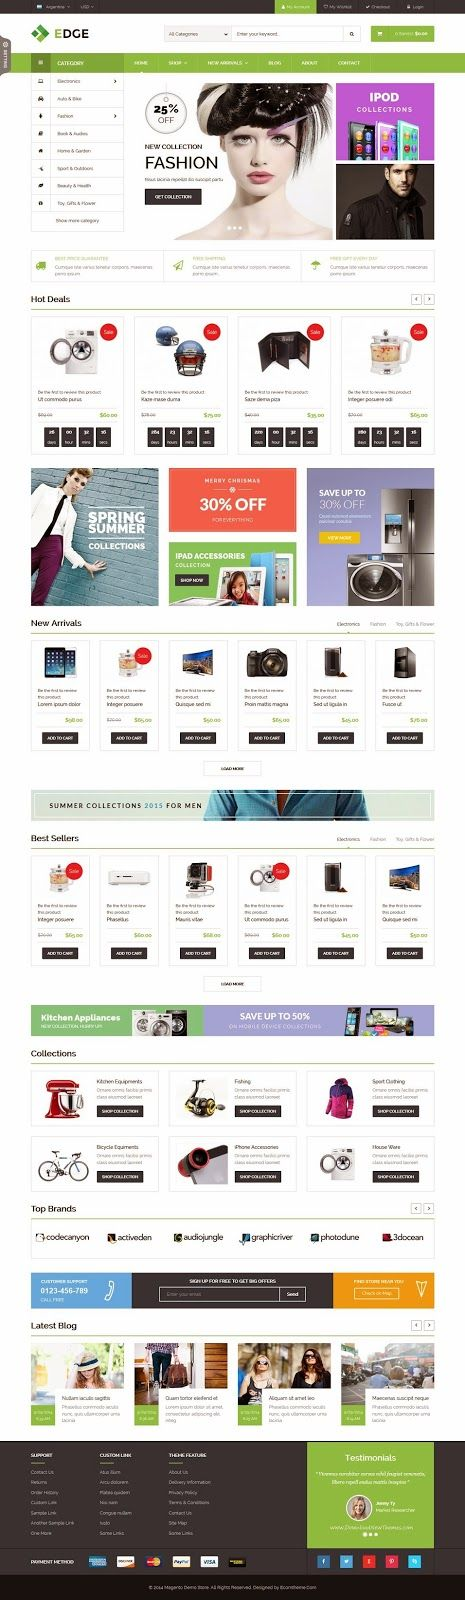 ET Edge Responsive Multipurpose Magento Theme 2015 #eCommerce #template